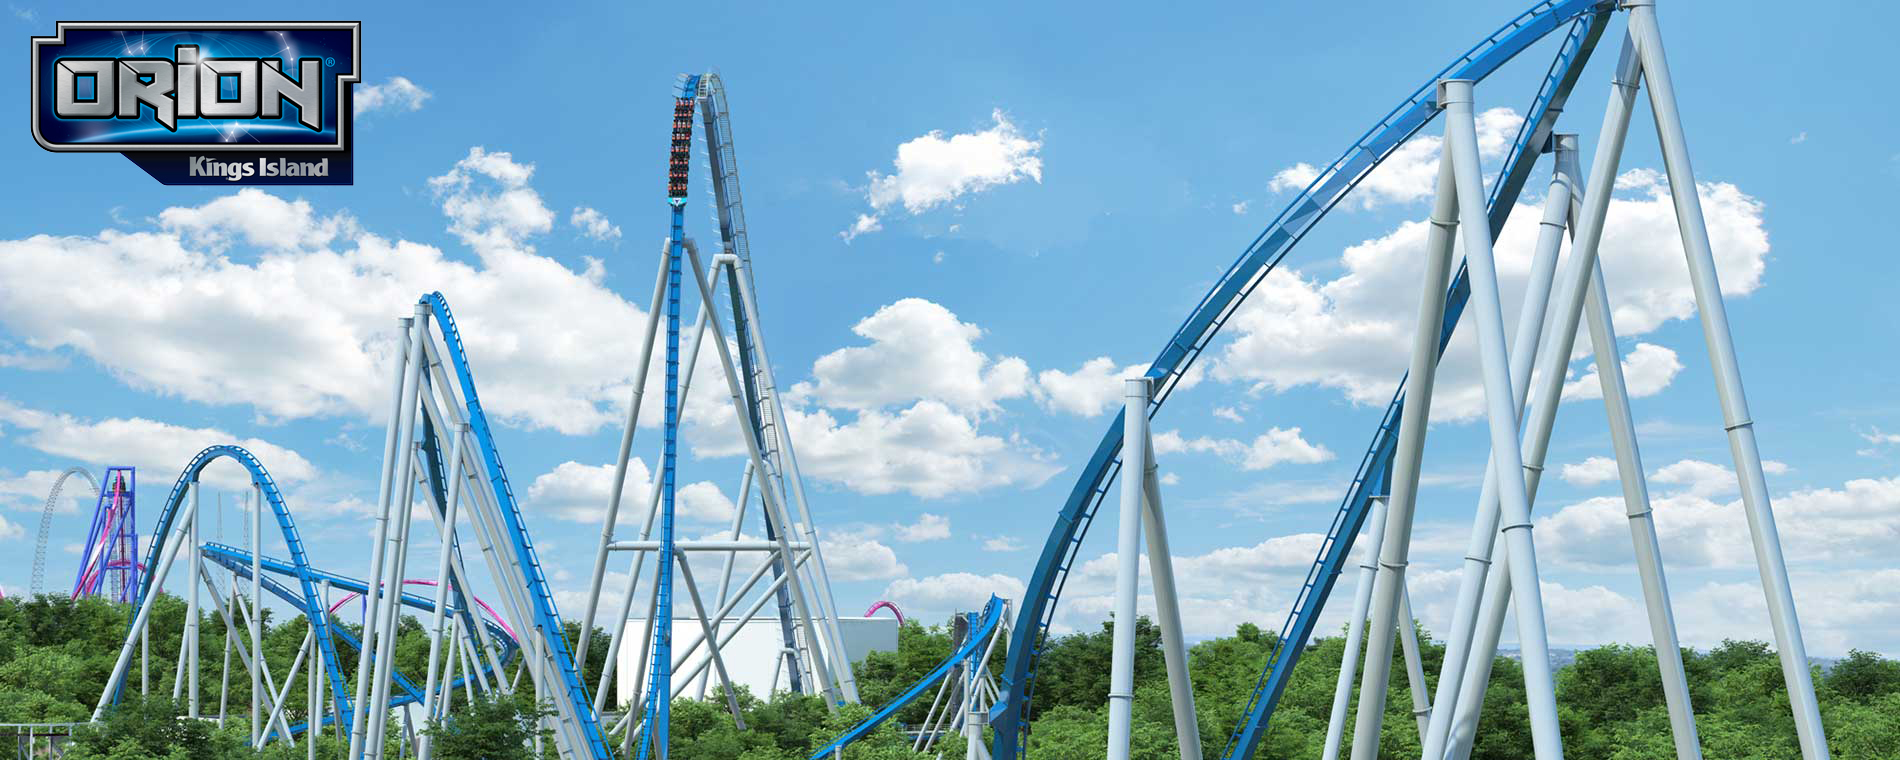 Orion - Kings Island Giga Coaster - 2020